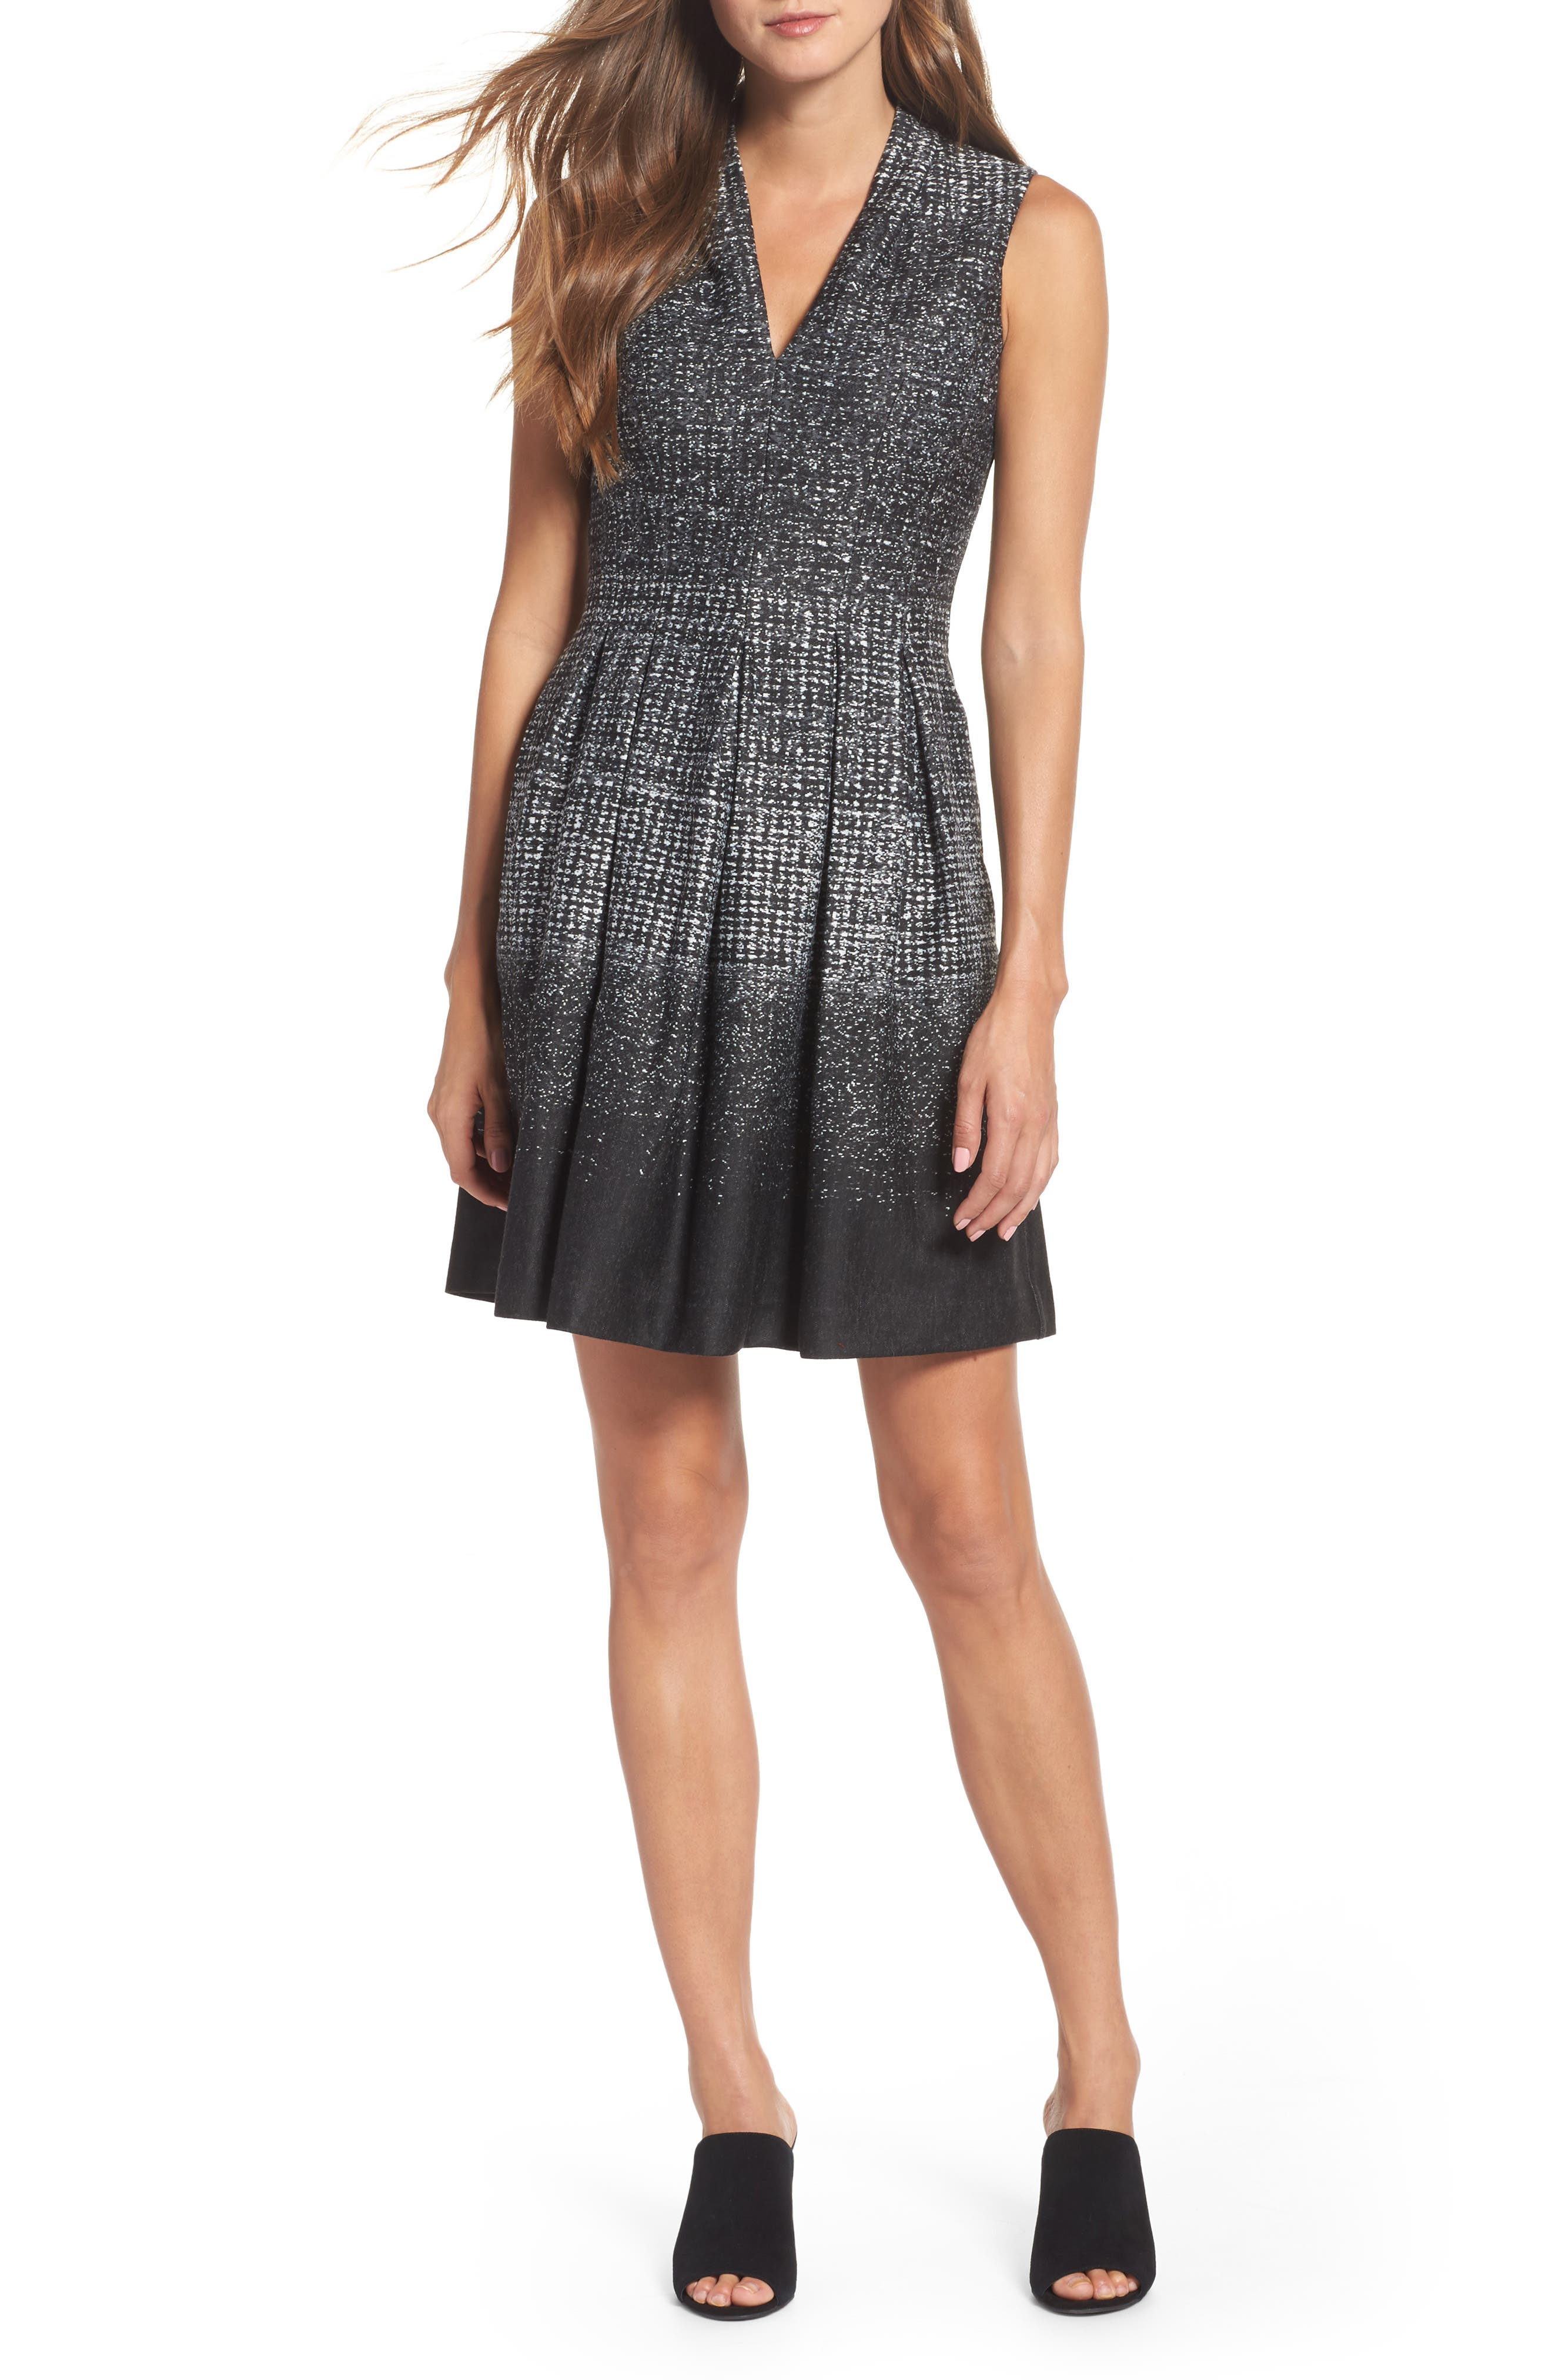 Vince Camuto Sleeveless Fit & Flare Dress (Regular & Petite)